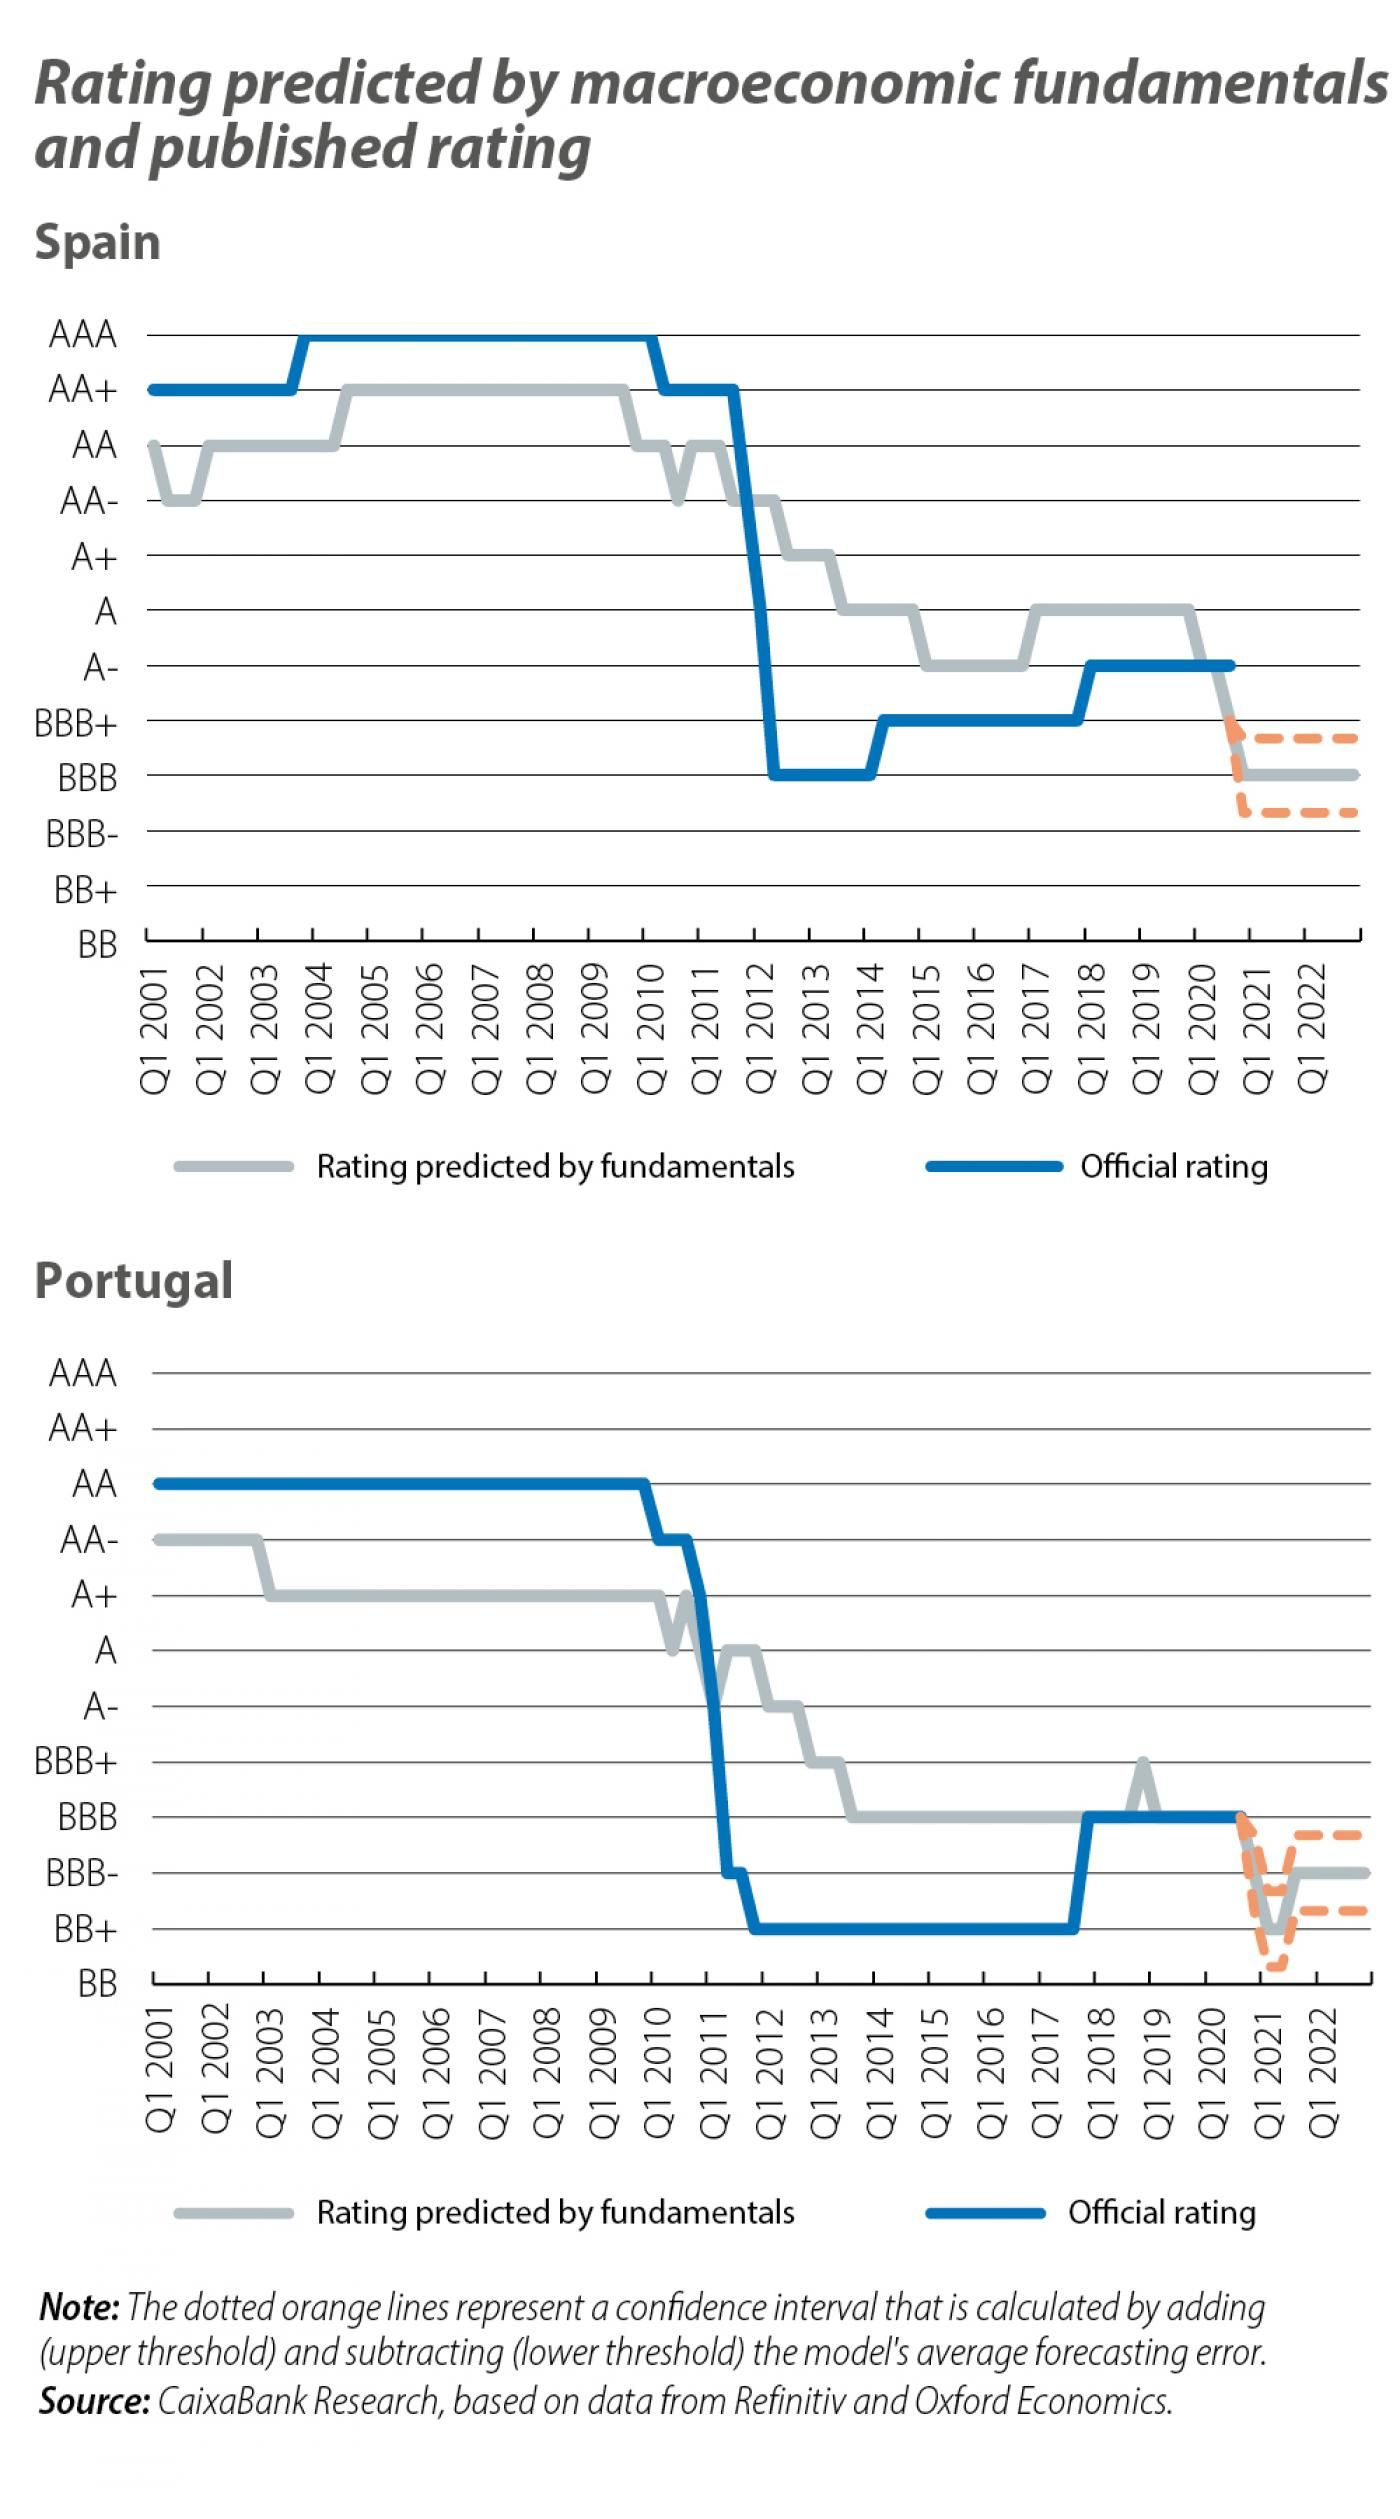 Rating predicted by macroeconomic fundamentals and published rating